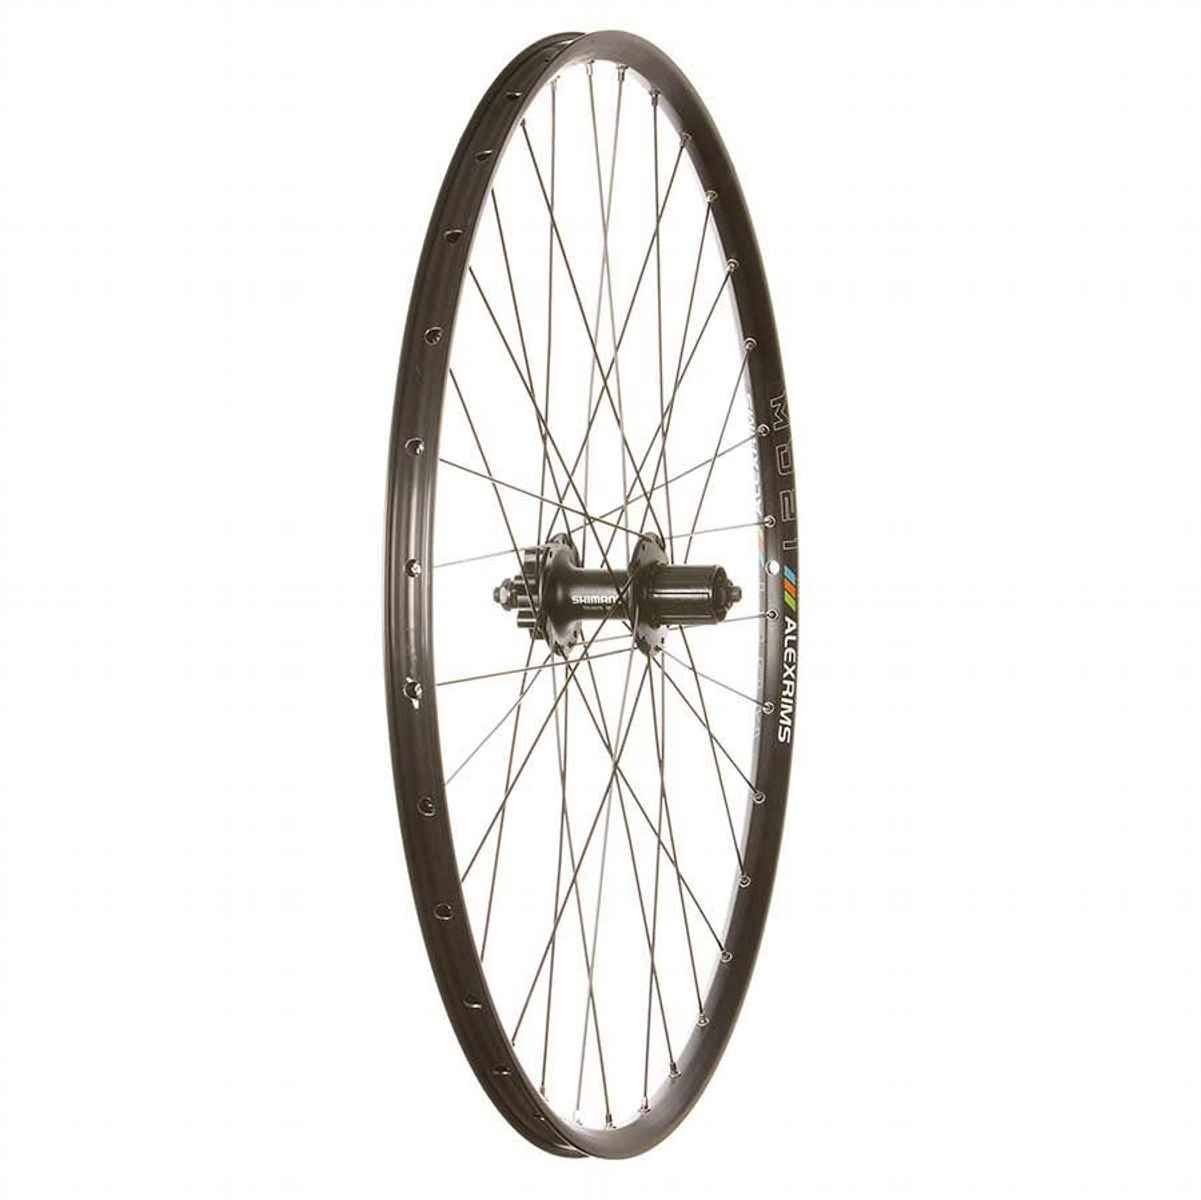 Wheel Shop Alex MD21/Shimano M475/DT Stainless 29 Wheel : Disc Is 6-Bolt 29 / 622 Rear - NW02